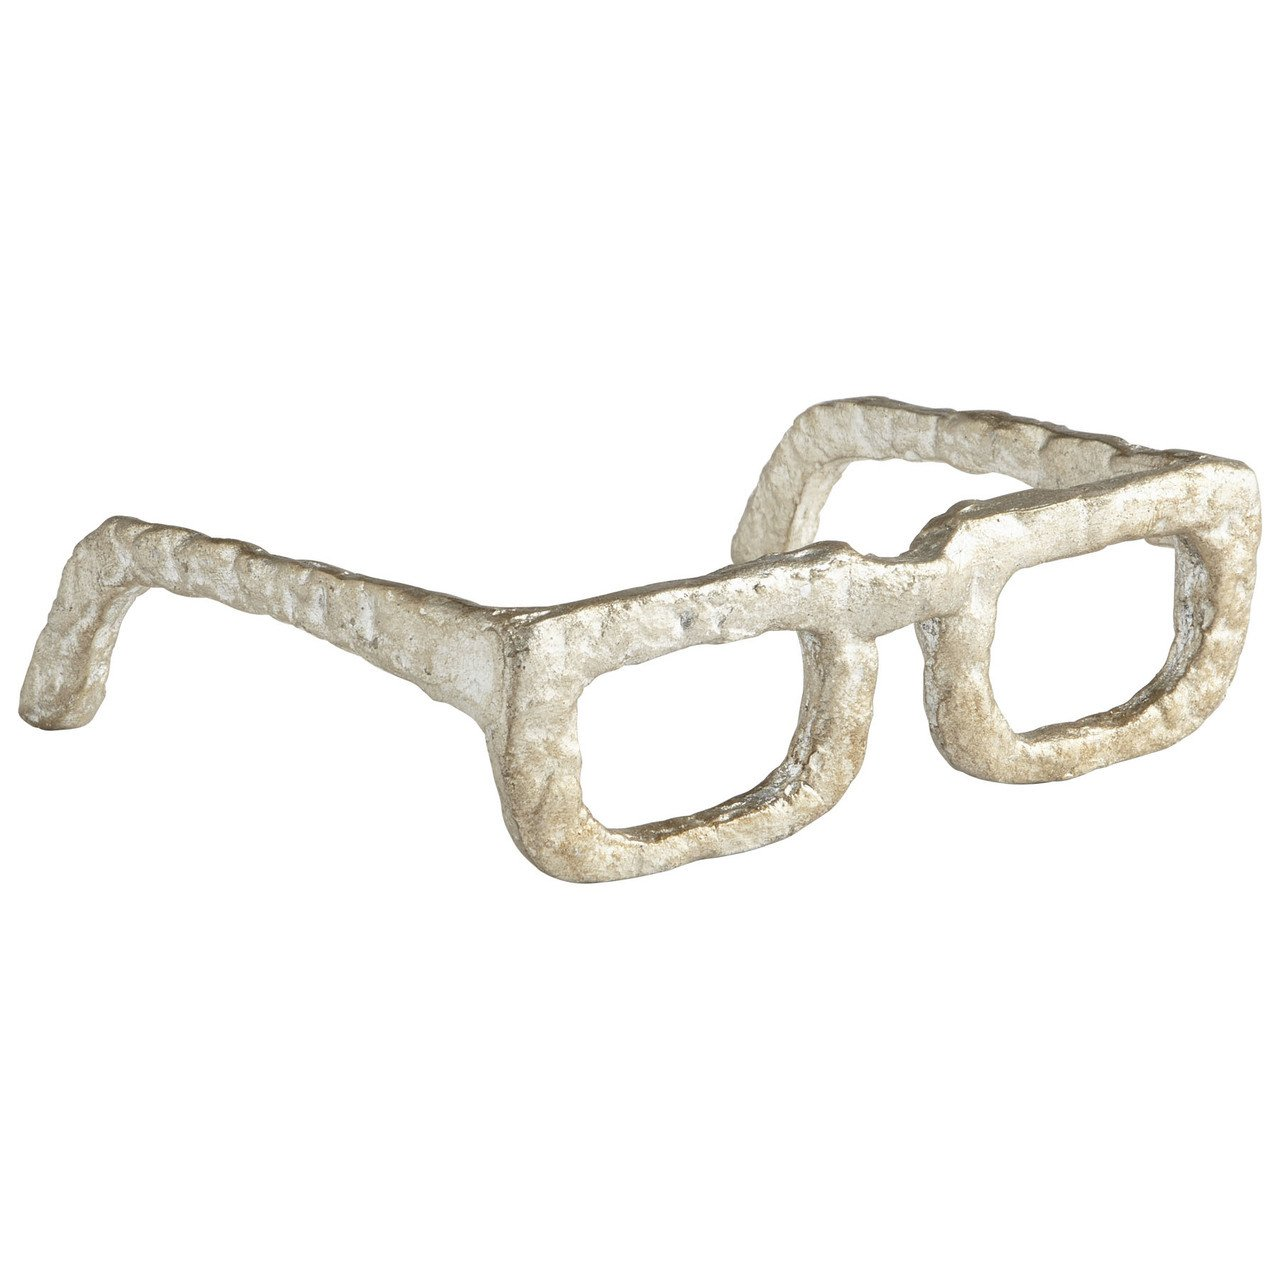 Cyan Design 08827 Sculptured Spectacles Ideal Gift for Wedding, Floral/Floor Vase, Party, Home Decor, Office, Spa